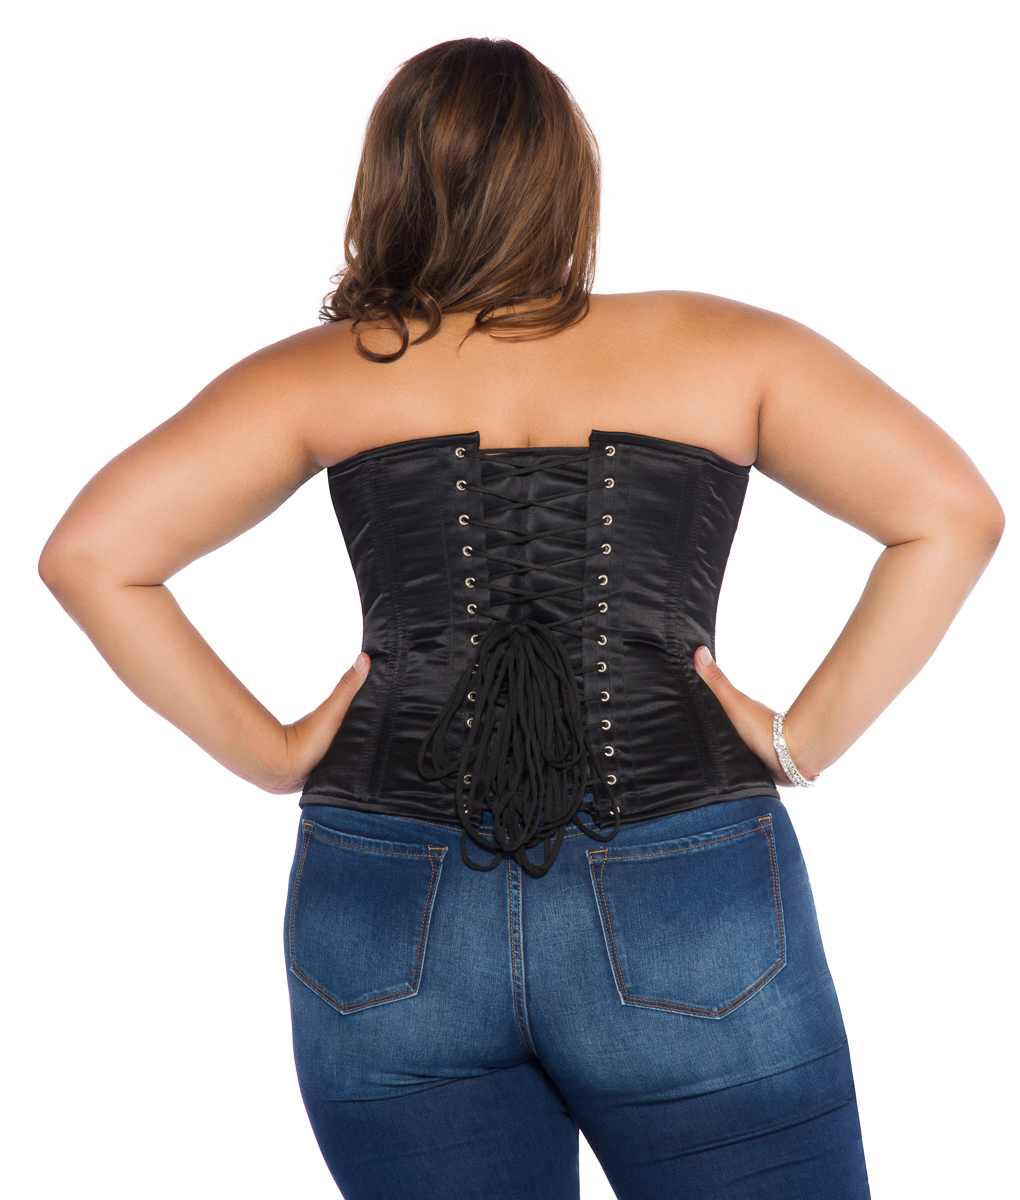 Jenna Black Satin Plus Size Corset Overbust with Steel Bones